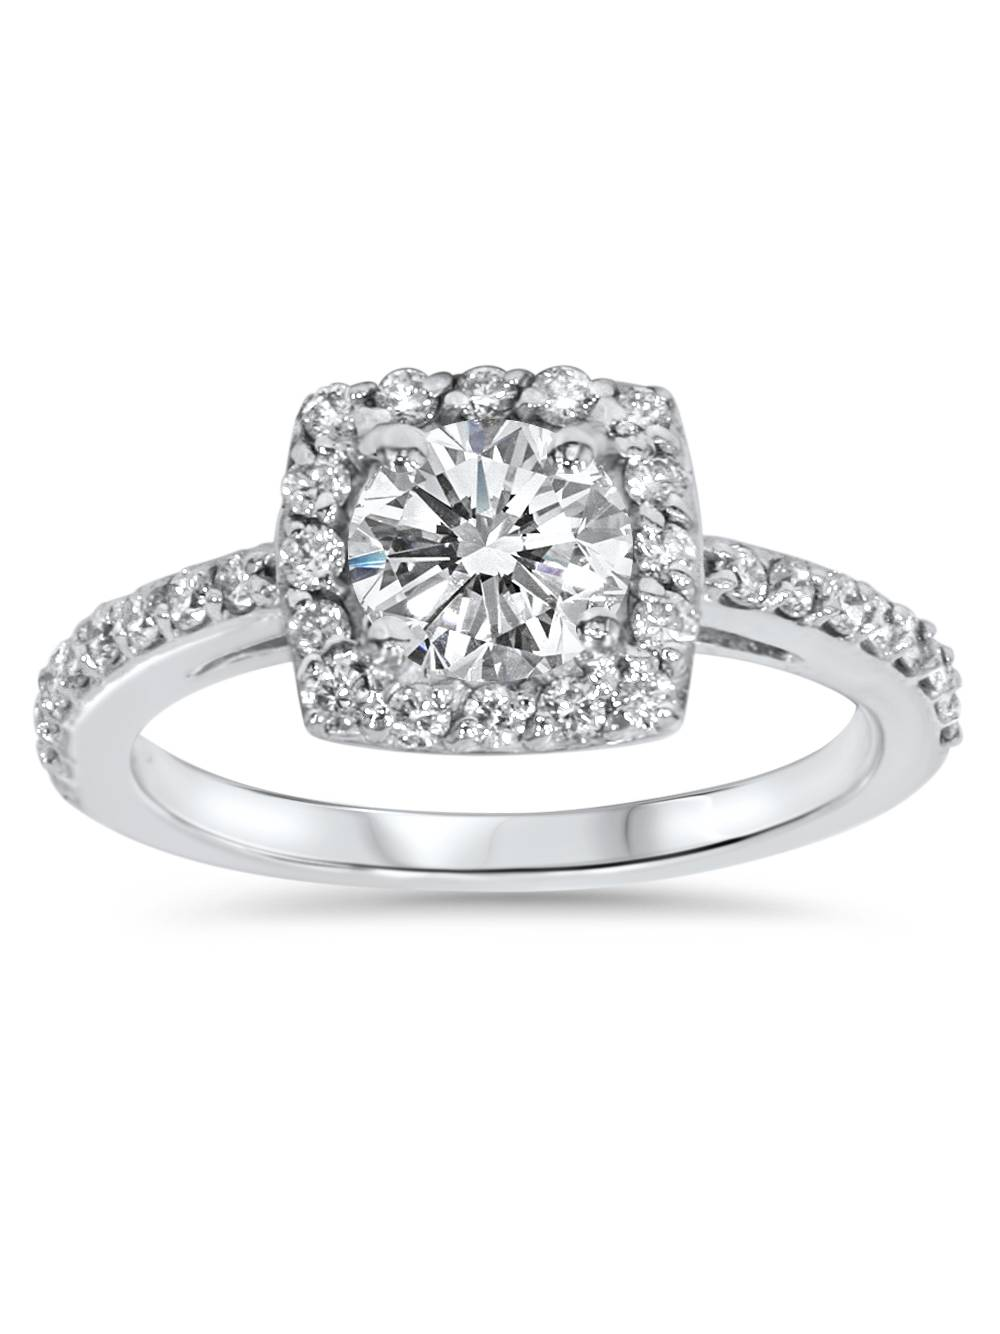 Cushion Halo Diamond Engagement Ring 3 4 ct Solitaire Brilliant Cut White Gold by Pompeii3